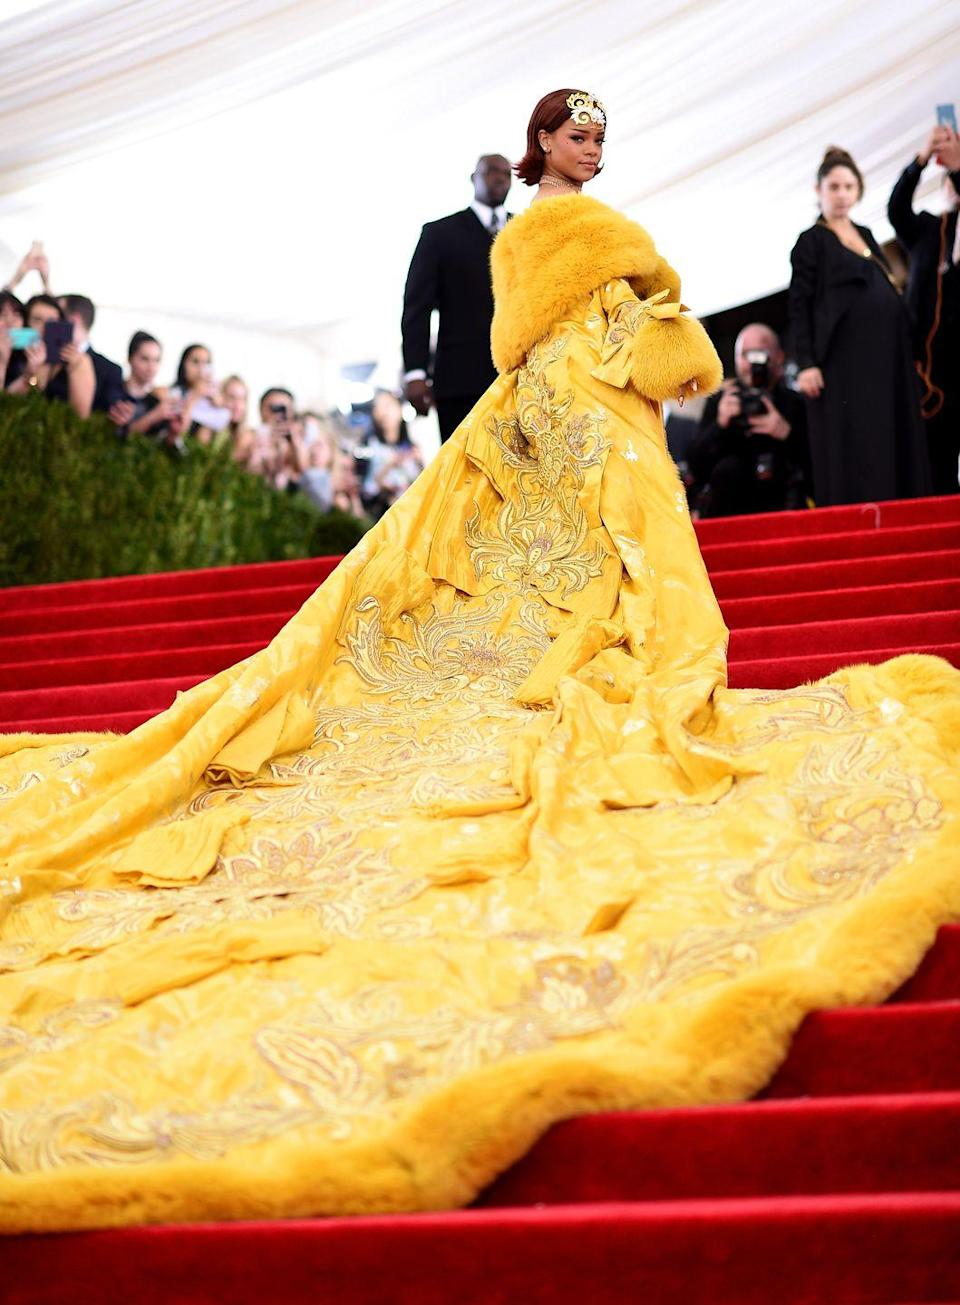 """<p>Never has a Met Gala look gone so instantly viral as the <a href=""""https://www.harpersbazaar.com/uk/celebrities/red-carpet/g27330102/best-ever-met-gala-fashion-history/?slide=2"""" rel=""""nofollow noopener"""" target=""""_blank"""" data-ylk=""""slk:yellow cape gown Rihanna"""" class=""""link rapid-noclick-resp"""">yellow cape gown Rihanna</a> wore in 2015 - popularly dubbed 'the omelette dress' - which sparked countless memes. The ornate look, by Chinese couturier Guo Pei, took 20 months to create and weighed approximately 55 pounds. </p>"""